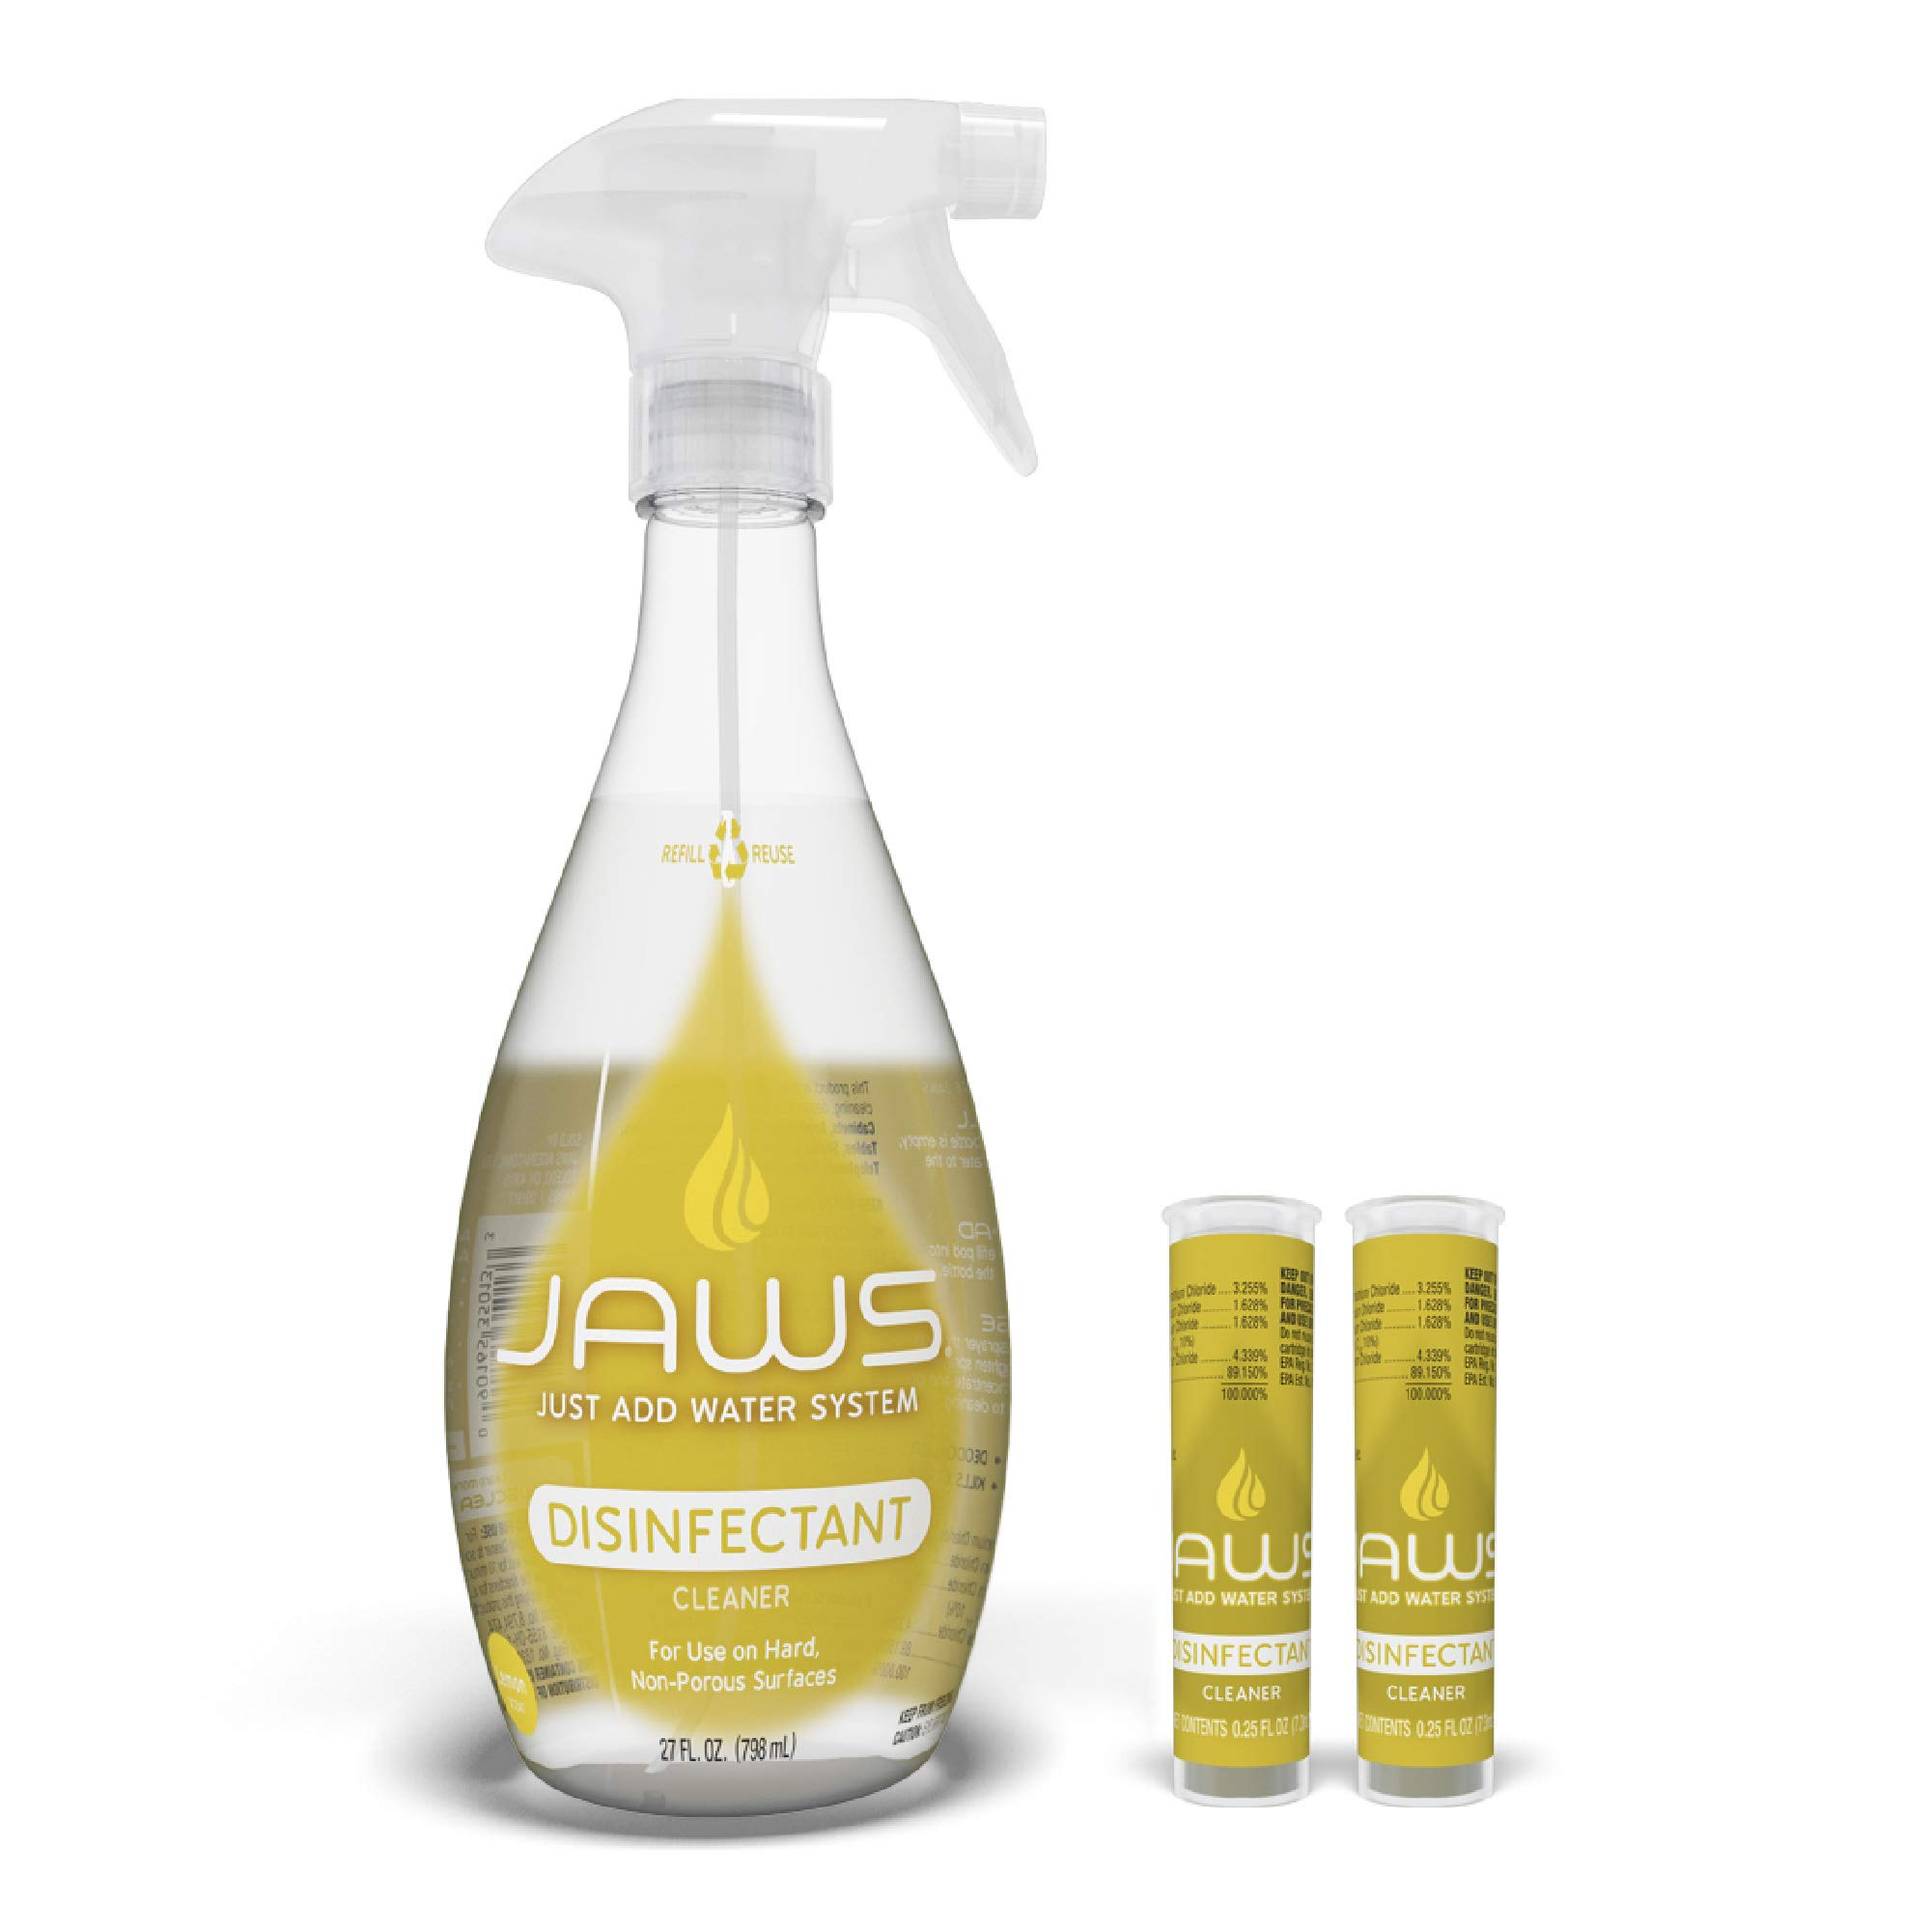 JAWS Cleaner, Disinfectant Spray with 2 Refill Pods, Powerful Multi-Purpose Cleaning, Refillable, Reusable, Recyclable